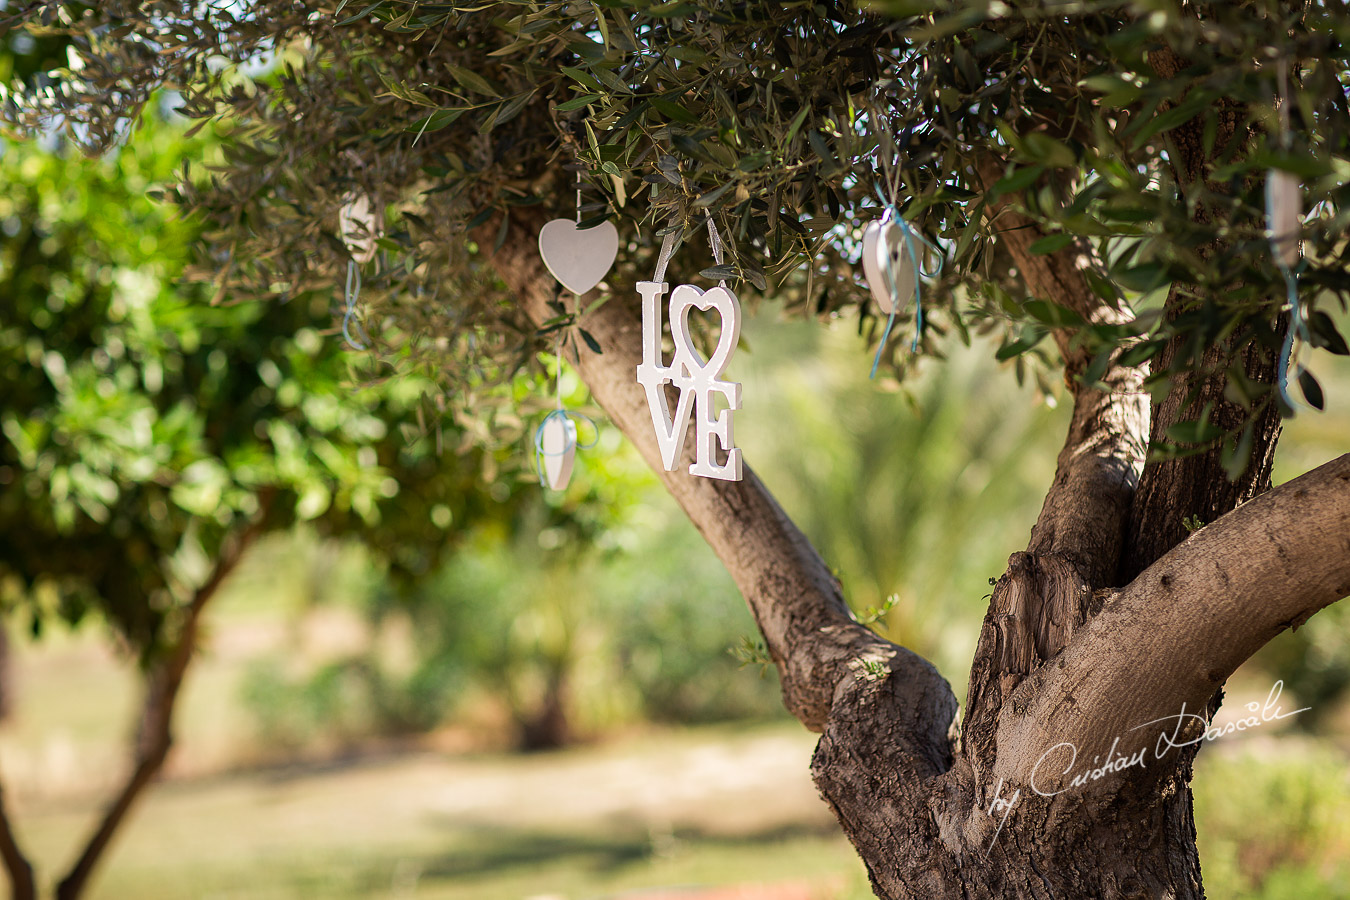 Beautiful wedding decorations captured at a wedding at Minthis Hills in Cyprus, by Cristian Dascalu.